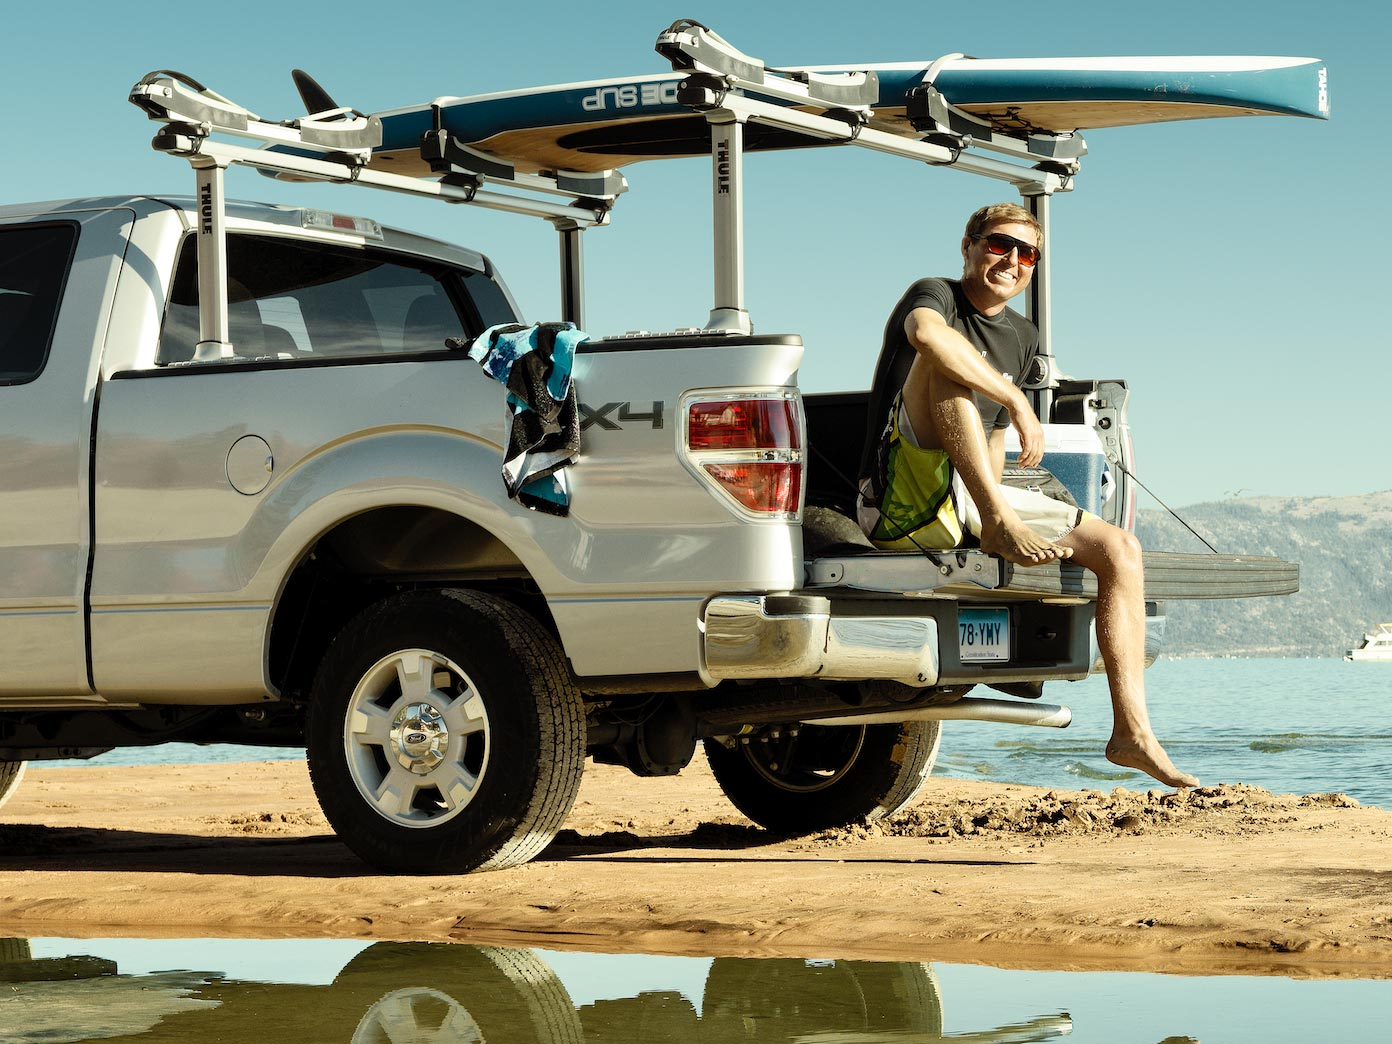 Guy sitting on the back of a pick-up truck with surfboard on rack.